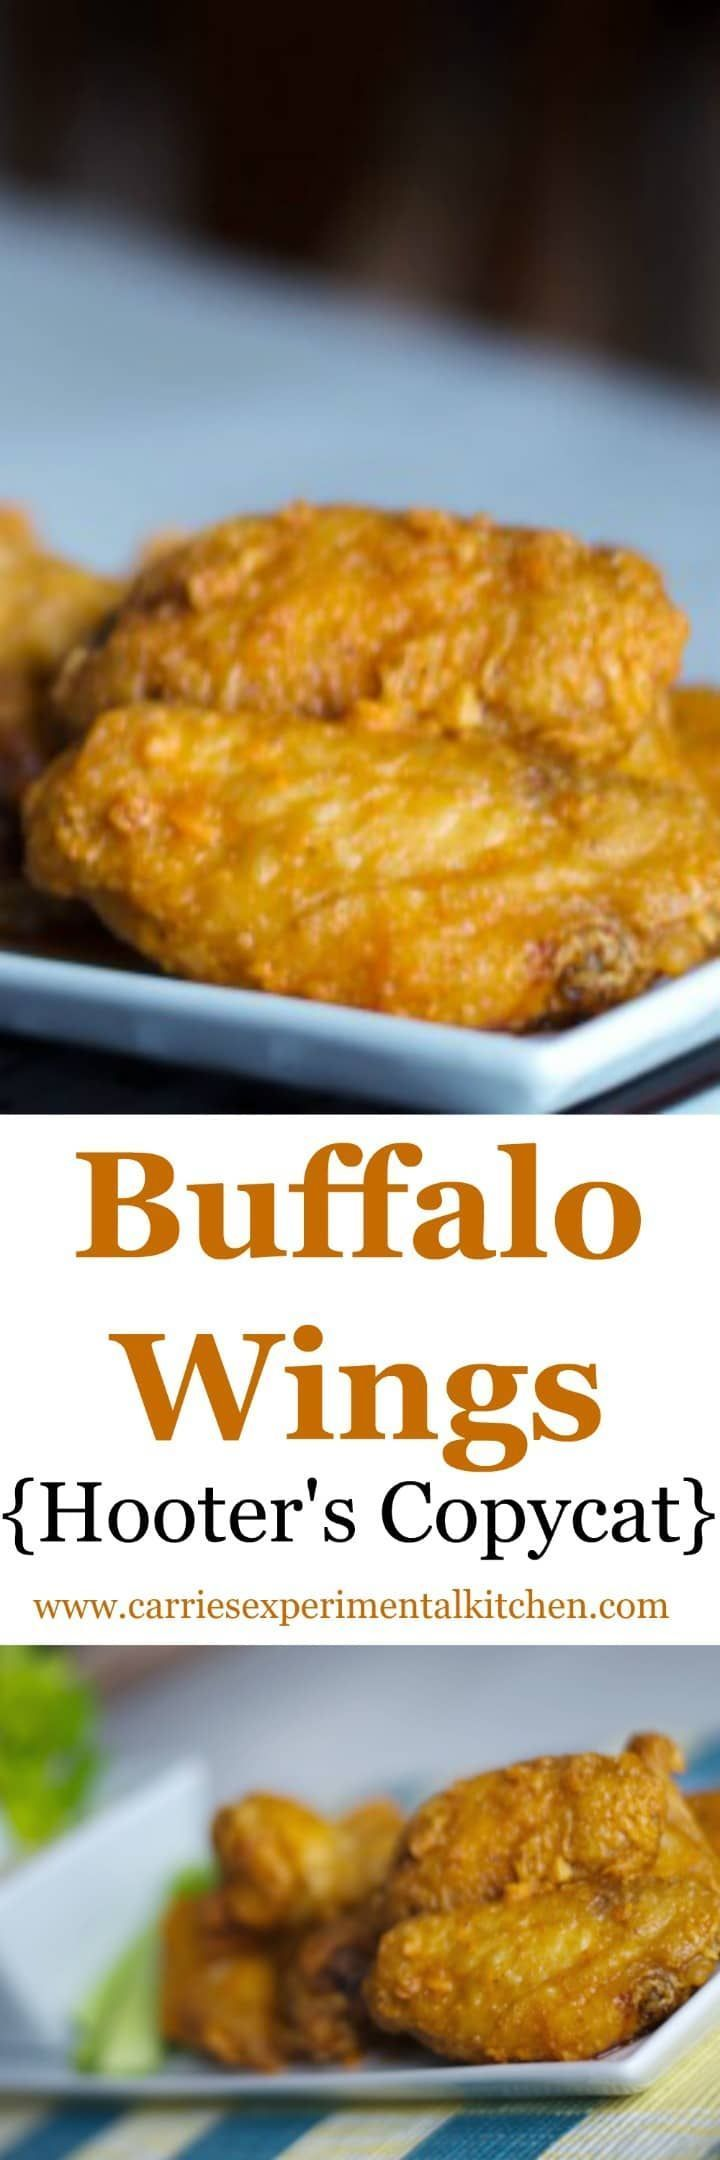 Make the infamous Hooter's Buffalo Wings at home with a few simple ingredients. Perfect for game day snacking too! #copycatrecipe #chicken #chickenwings #gameday #appetizer